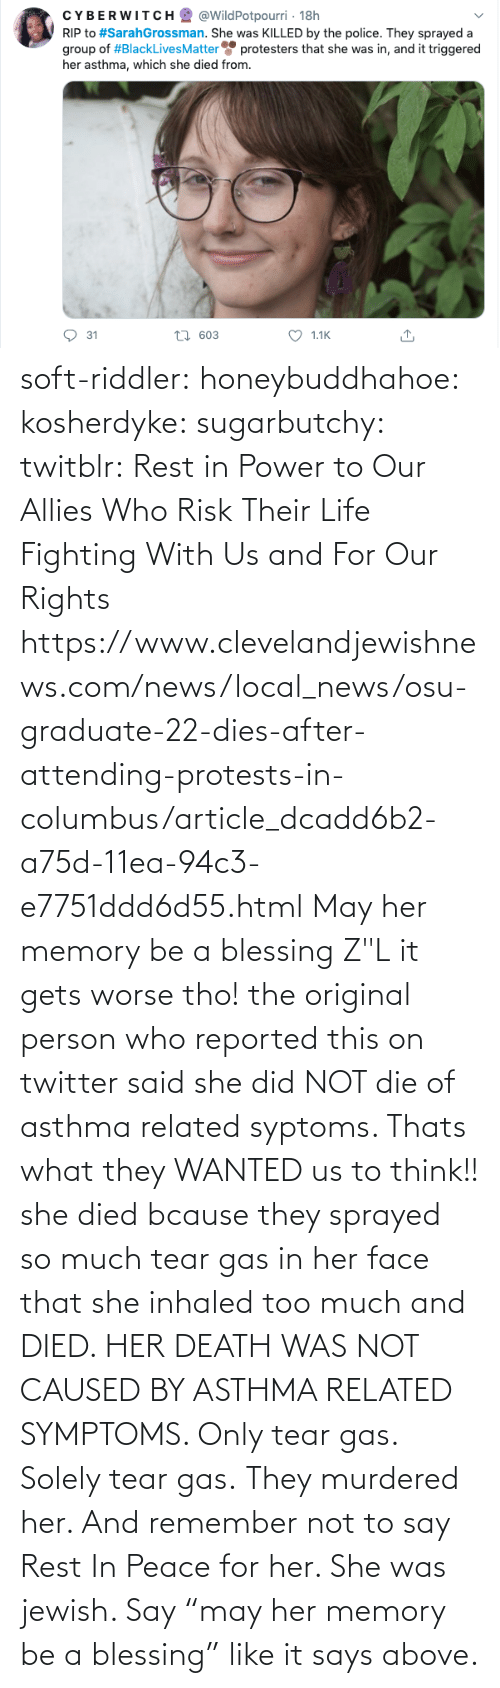 "may: soft-riddler:  honeybuddhahoe:  kosherdyke:  sugarbutchy:  twitblr: Rest in Power to Our Allies Who Risk Their Life Fighting With Us and For Our Rights https://www.clevelandjewishnews.com/news/local_news/osu-graduate-22-dies-after-attending-protests-in-columbus/article_dcadd6b2-a75d-11ea-94c3-e7751ddd6d55.html    May her memory be a blessing Z""L  it gets worse tho! the original person who reported this on twitter said she did NOT die of asthma related syptoms. Thats what they WANTED us to think!! she died bcause they sprayed so much tear gas in her face that she inhaled too much and DIED. HER DEATH WAS NOT CAUSED BY ASTHMA RELATED SYMPTOMS. Only tear gas. Solely tear gas. They murdered her.     And remember not to say Rest In Peace for her. She was jewish. Say ""may her memory be a blessing"" like it says above."